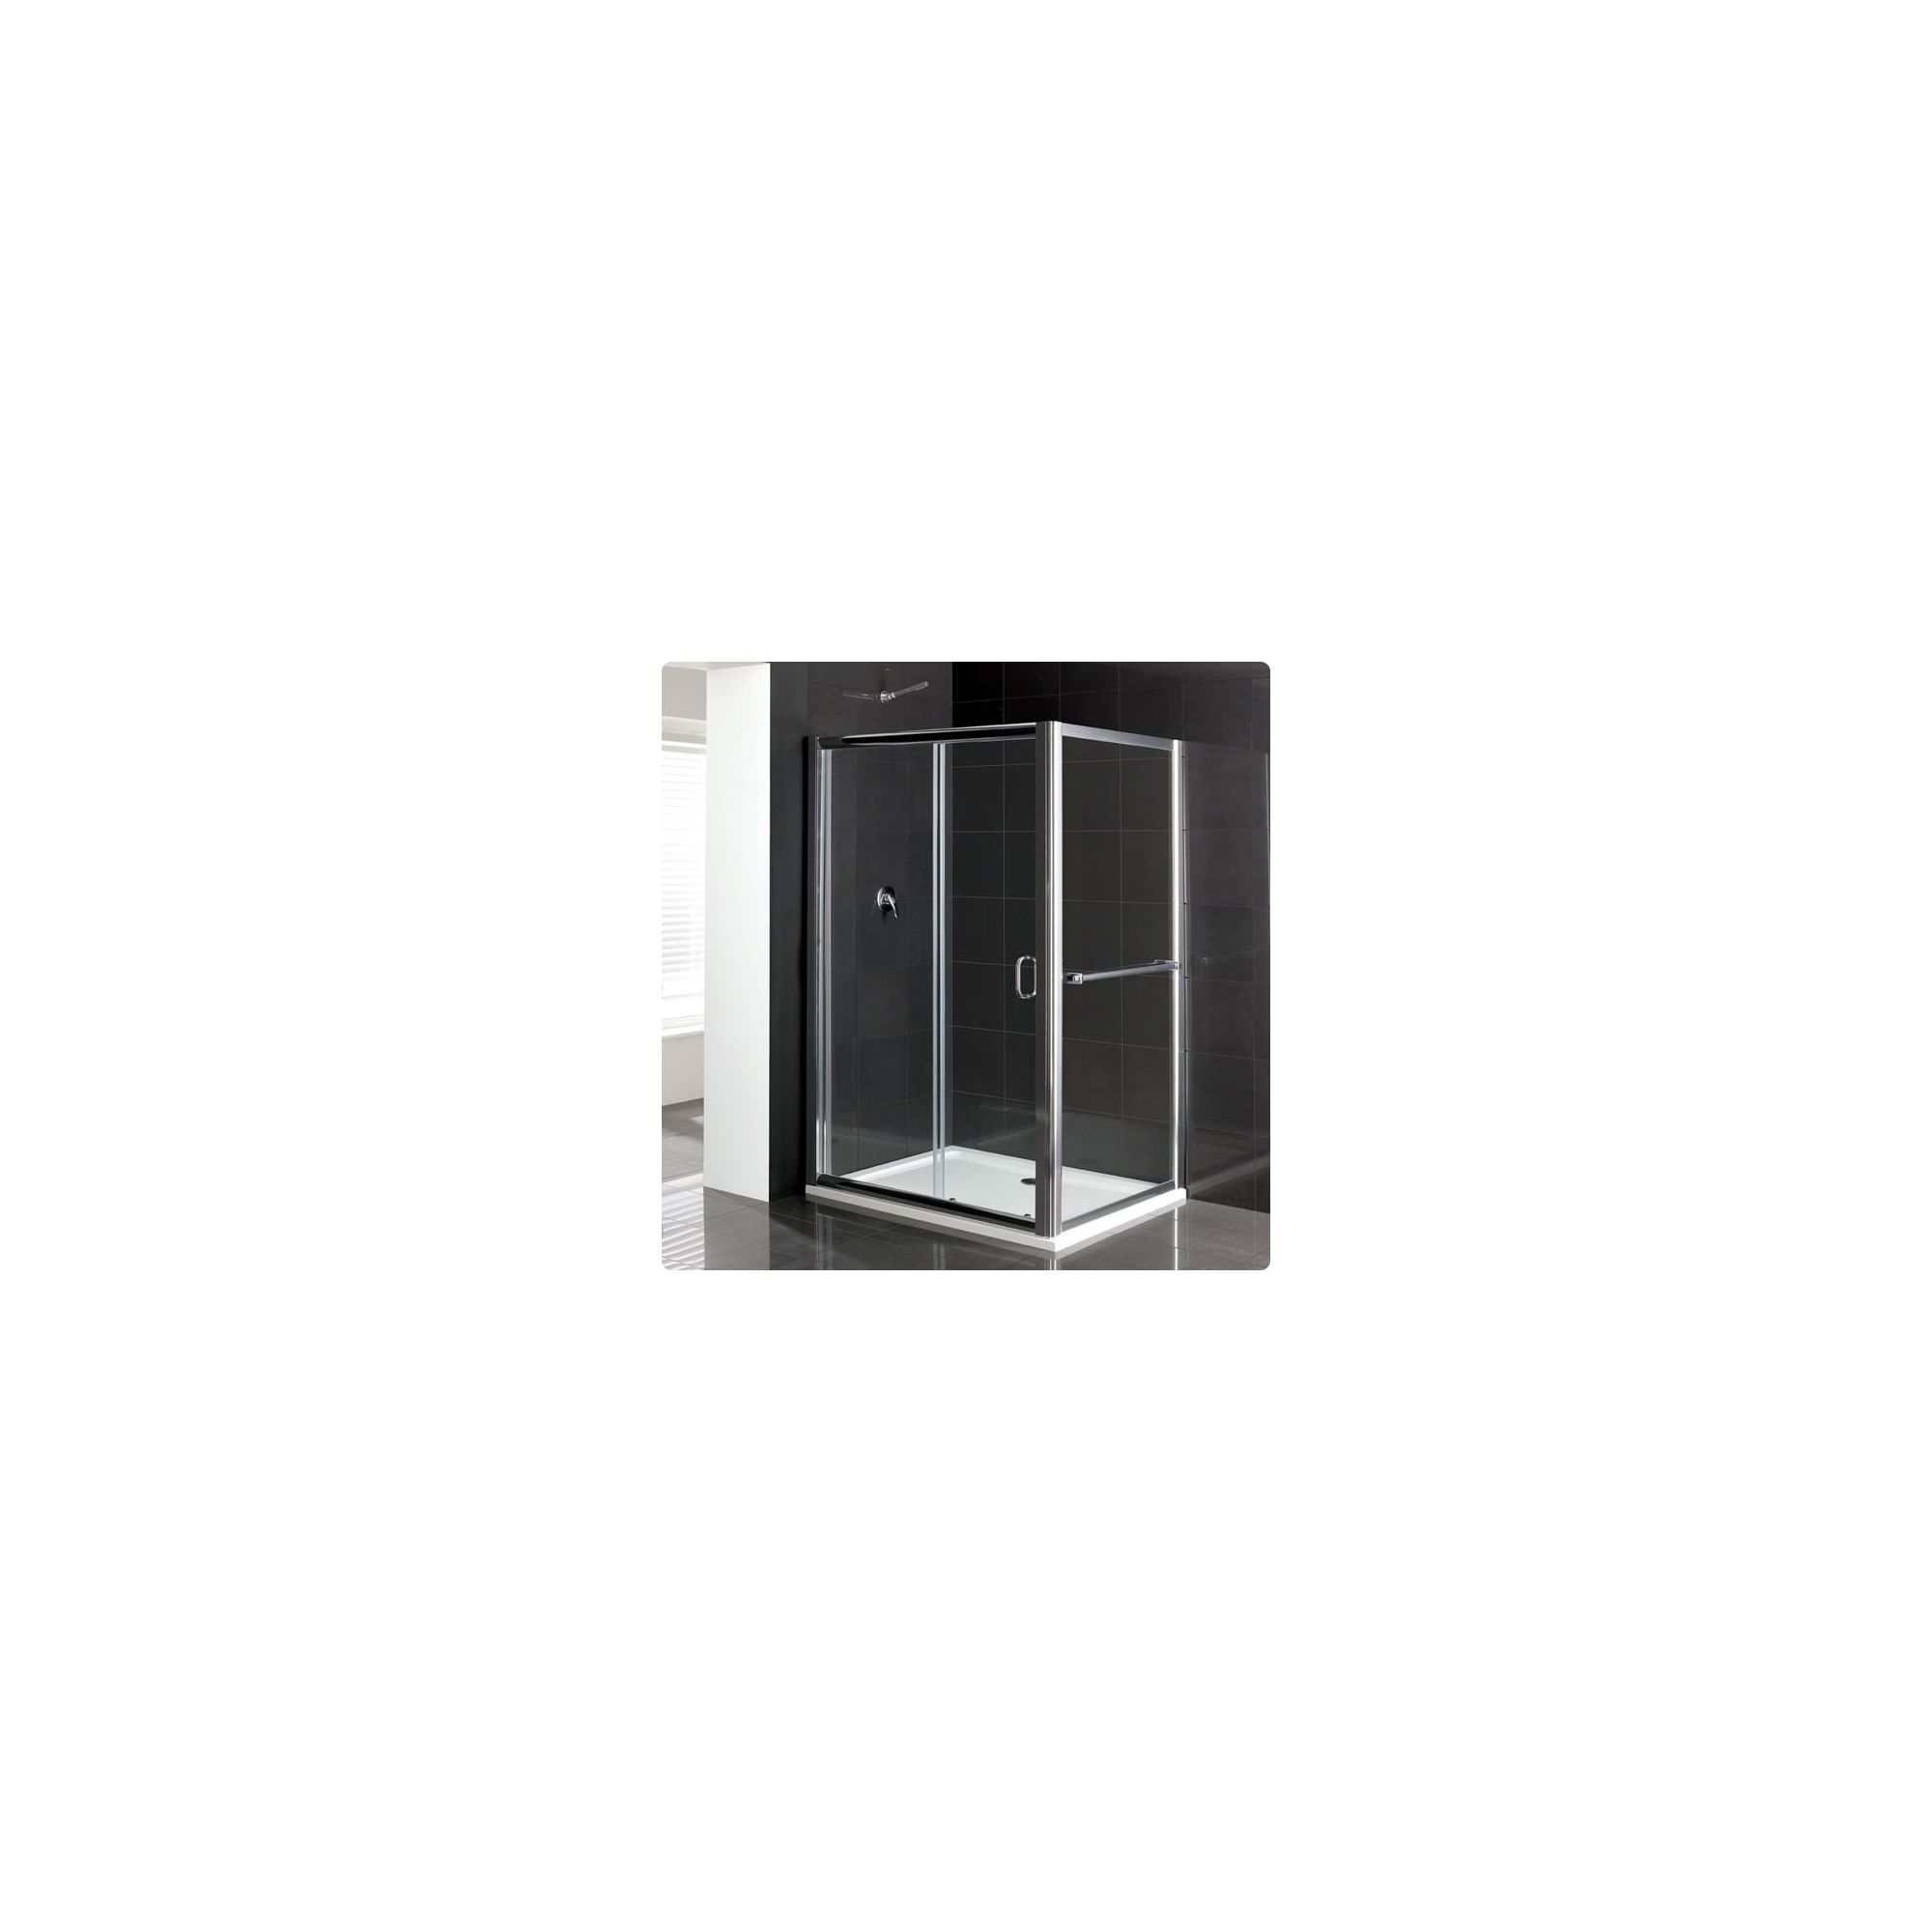 Duchy Elite Silver Sliding Door Shower Enclosure with Towel Rail, 1000mm x 760mm, Standard Tray, 6mm Glass at Tesco Direct